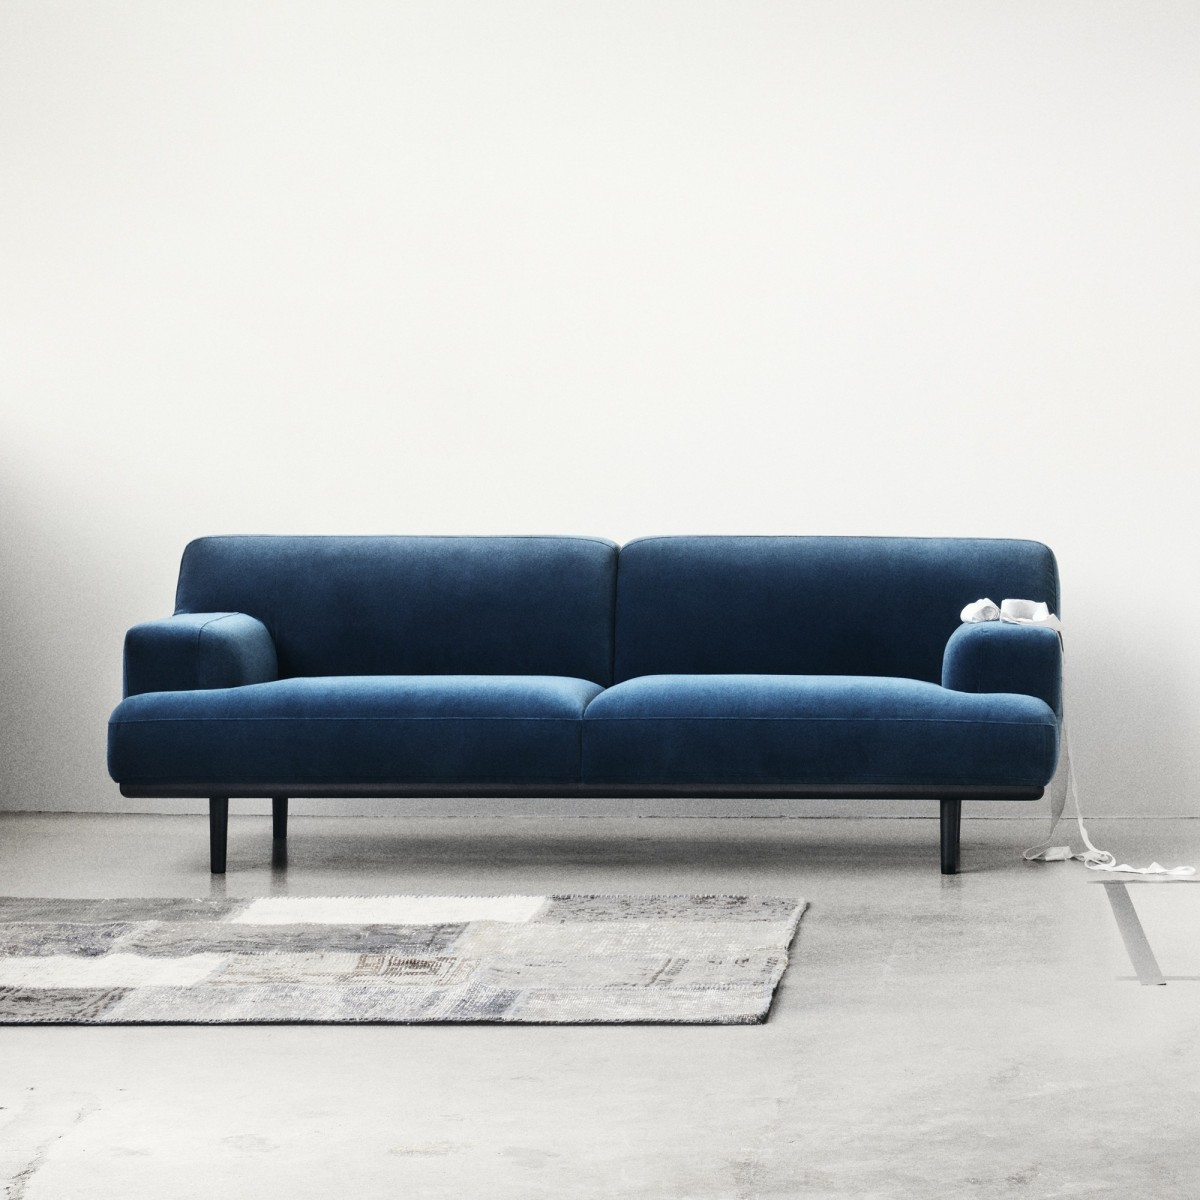 Madison sofa 3 seats bolia for Bolia sofa